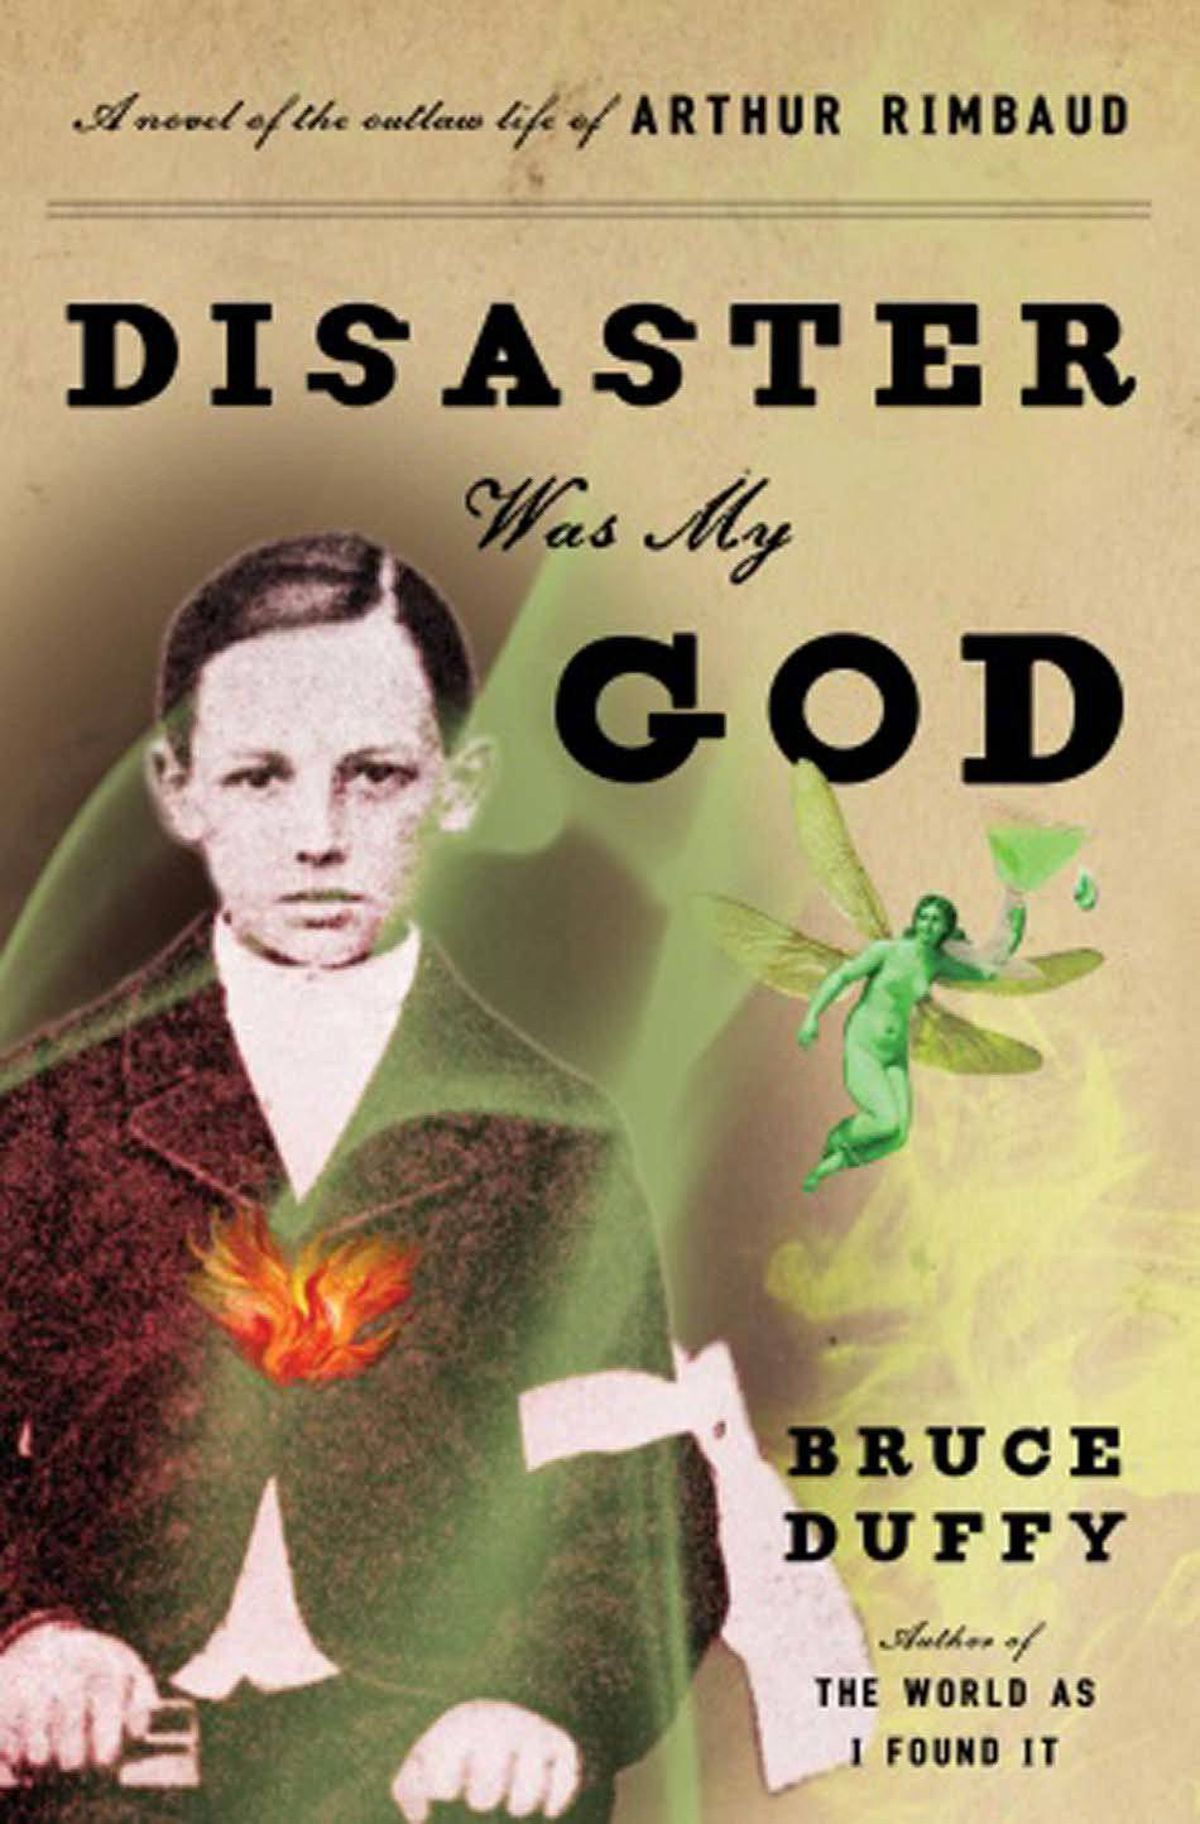 "DISASTER WAS MY GOD A Novel of the Outlaw Life of Arthur Rimbaud By Bruce Duffy (Doubleday) Rimbaud was a 19th-century prodigy who booted poetry into the 20th century before refashioning himself as an arms dealer in Africa. This ""teenaged pied piper"" lured Paul Verlaine – here a depraved creature Duffy captures in all his spellbinding loathsomeness – over the cliff of propriety, sobriety and solvency. A wonderful story, with a vitality that can't be suppressed. – Kathleen Byrne"